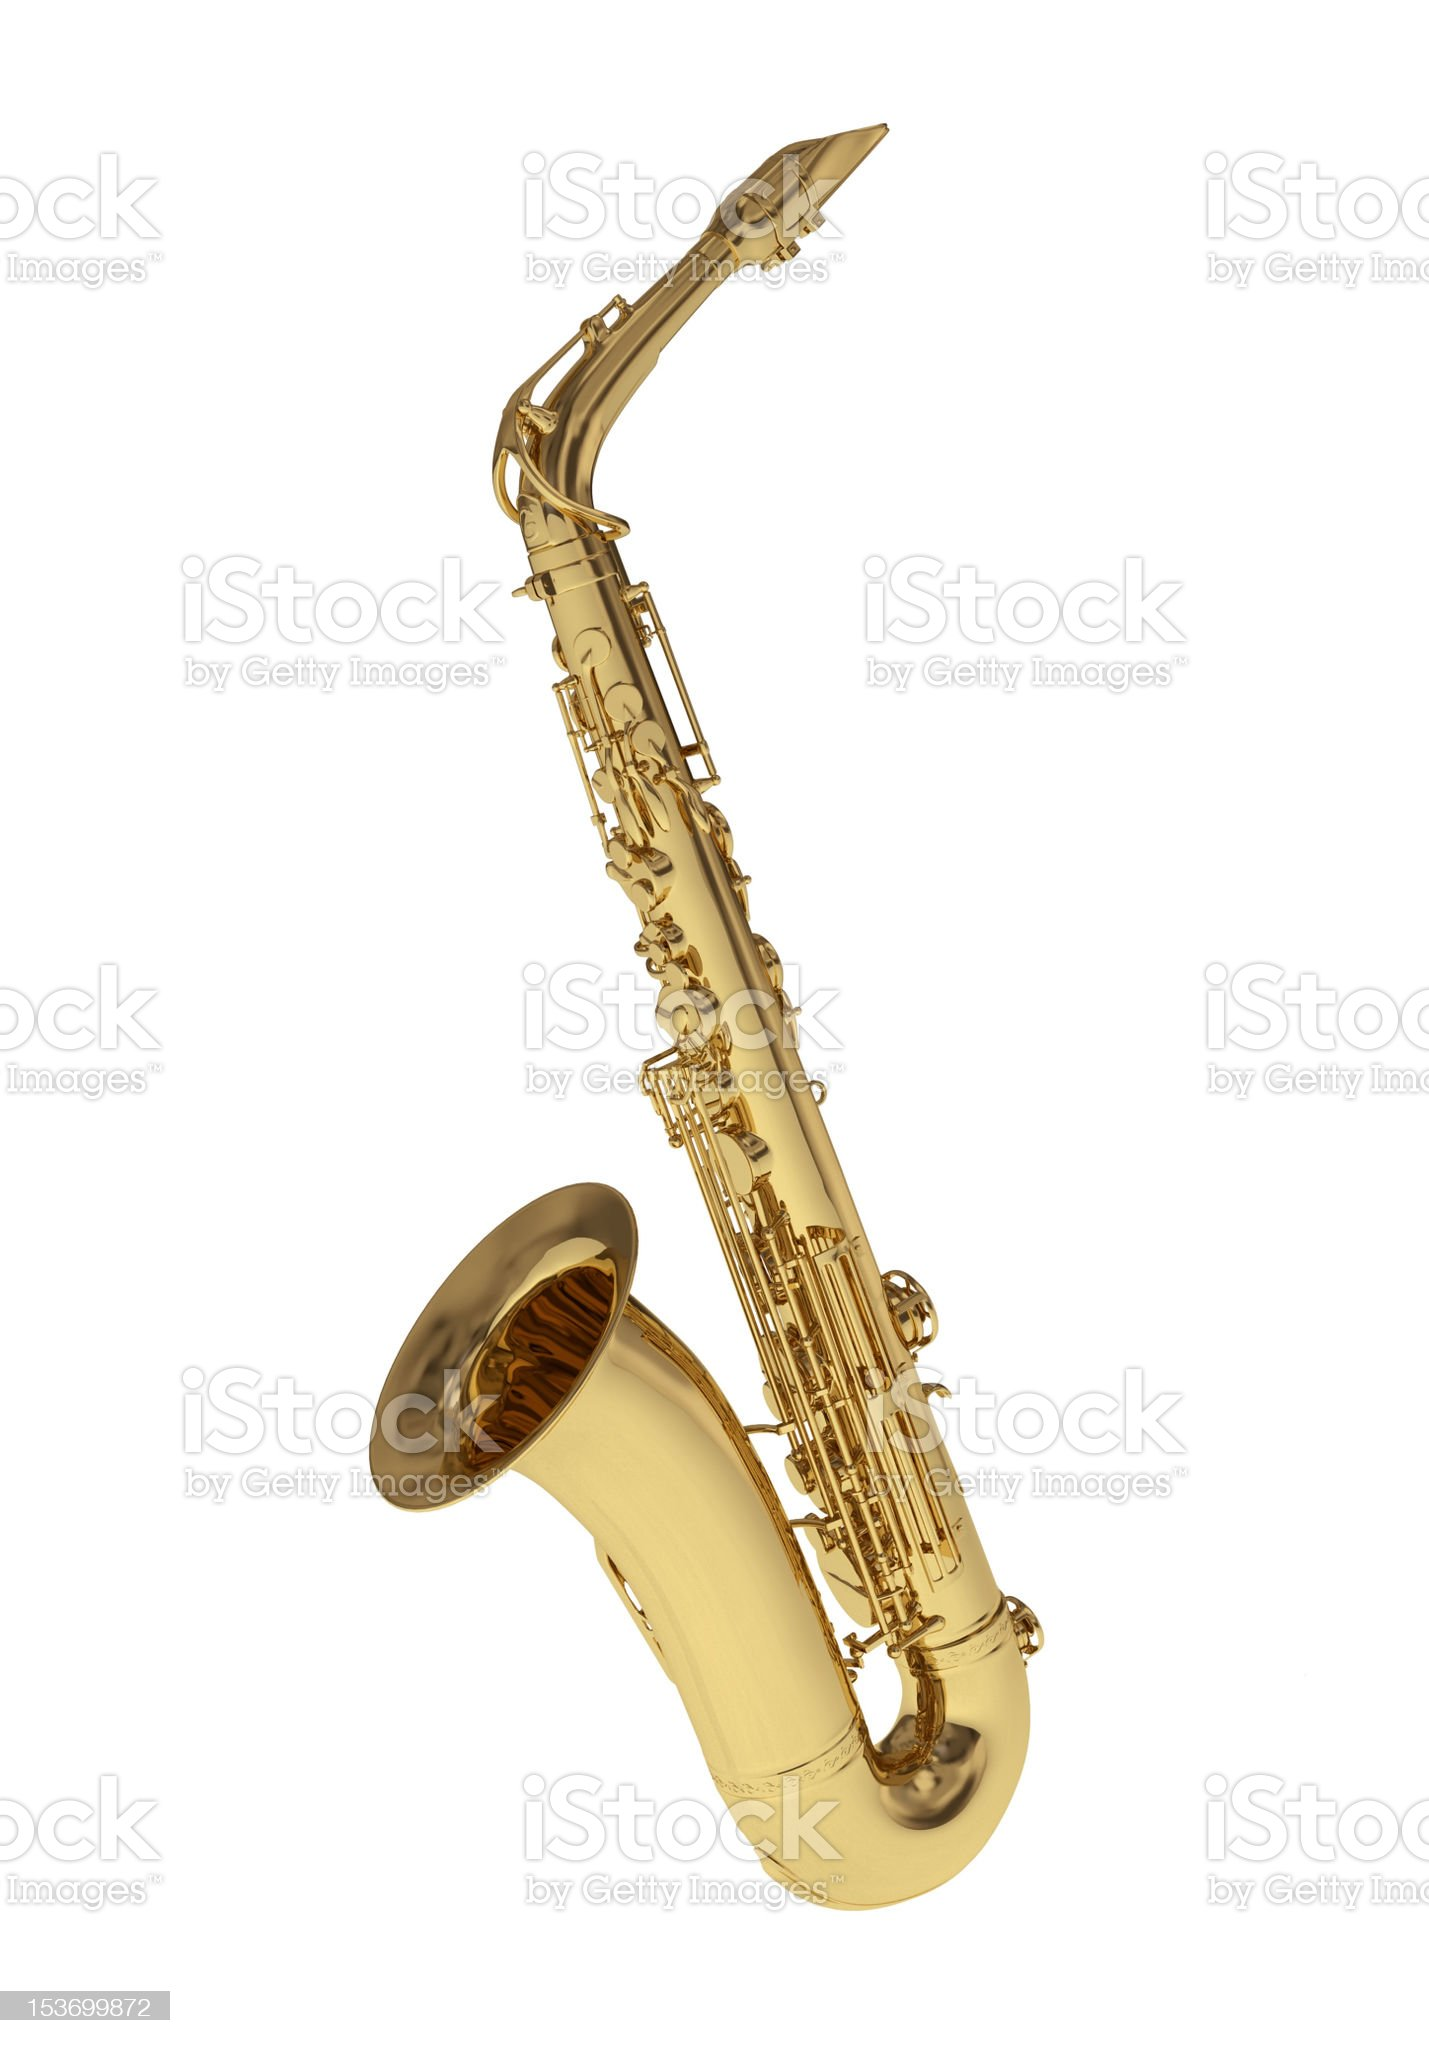 Golden saxophone on white background royalty-free stock photo